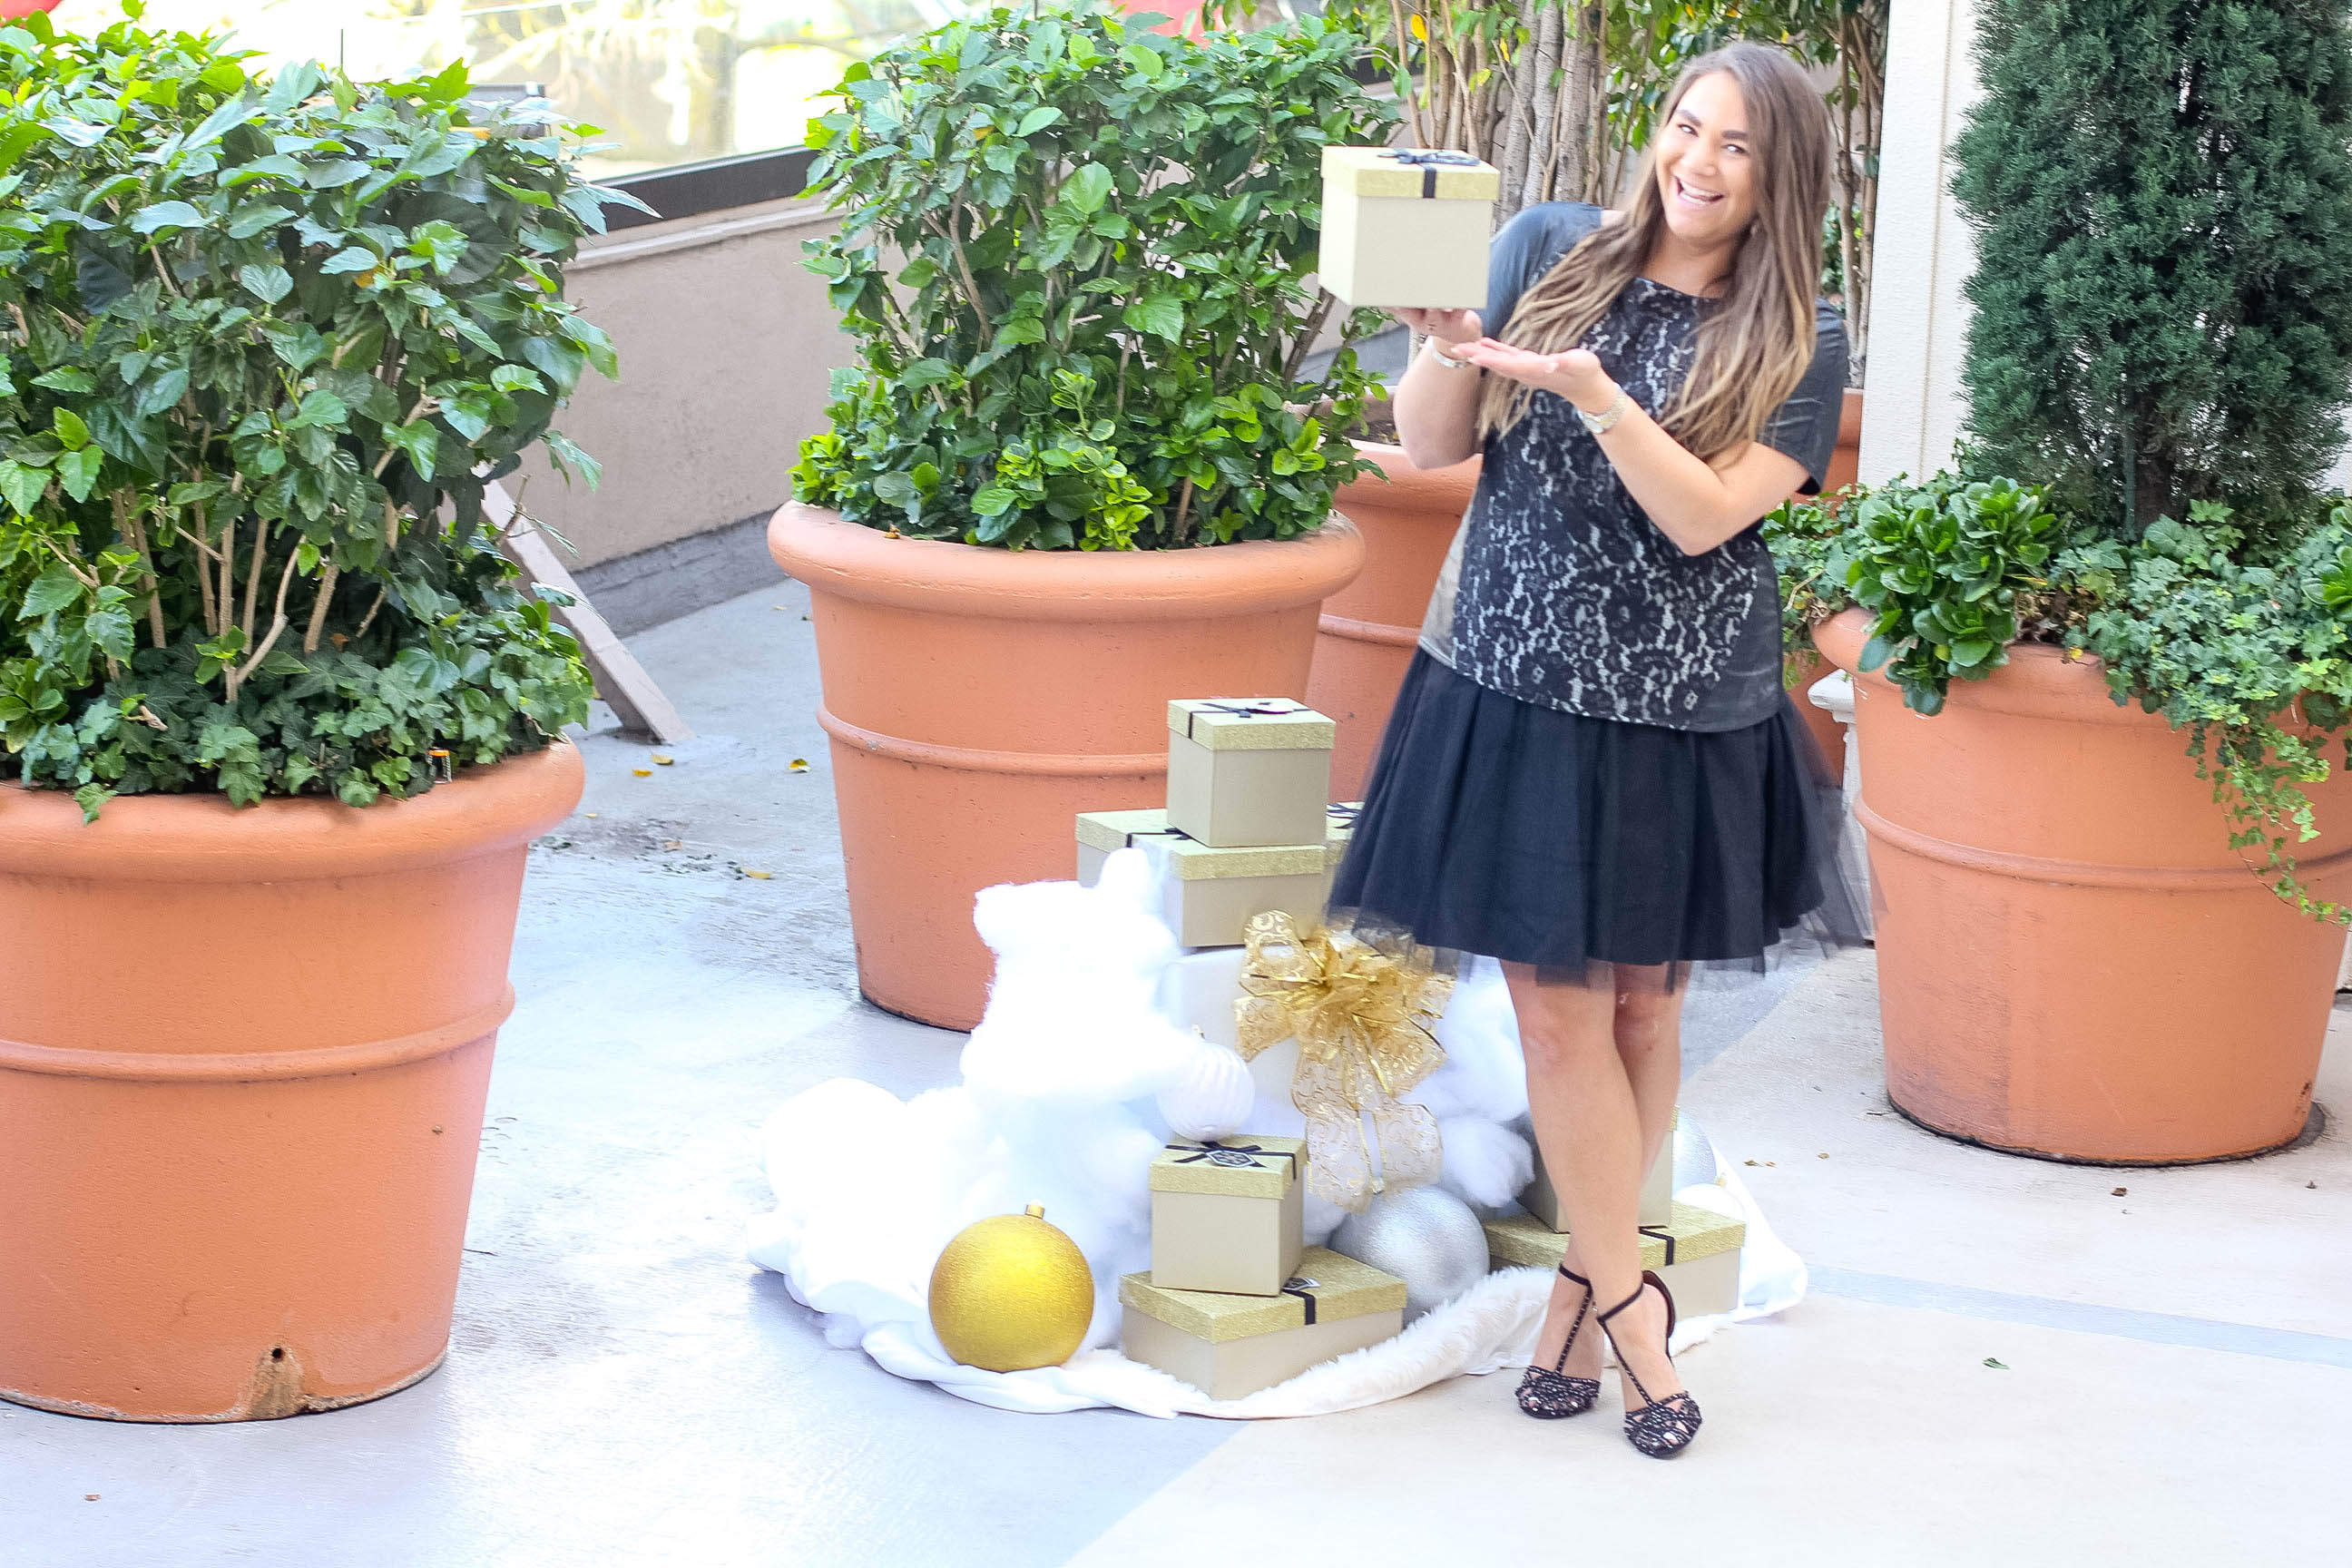 missyonmadison, melissa tierney, fashion blogger, fashion blog, fall style, holidays, holiday season, holiday dressing, what to wear for the holidays, tulle skirt, black tulle skirt, black t strap heels, black heels, holiday footwear, black floral blouse, black lace top, black faux leather top, louis vuitton toiletry pouch, louis vuitton toiletry pouch 26, la blogger, la style, what to wear for the holidays, beverly hills, beverly wilshire, rodeo drive, rodeo gives back, beverly hills holiday lighting celebration,